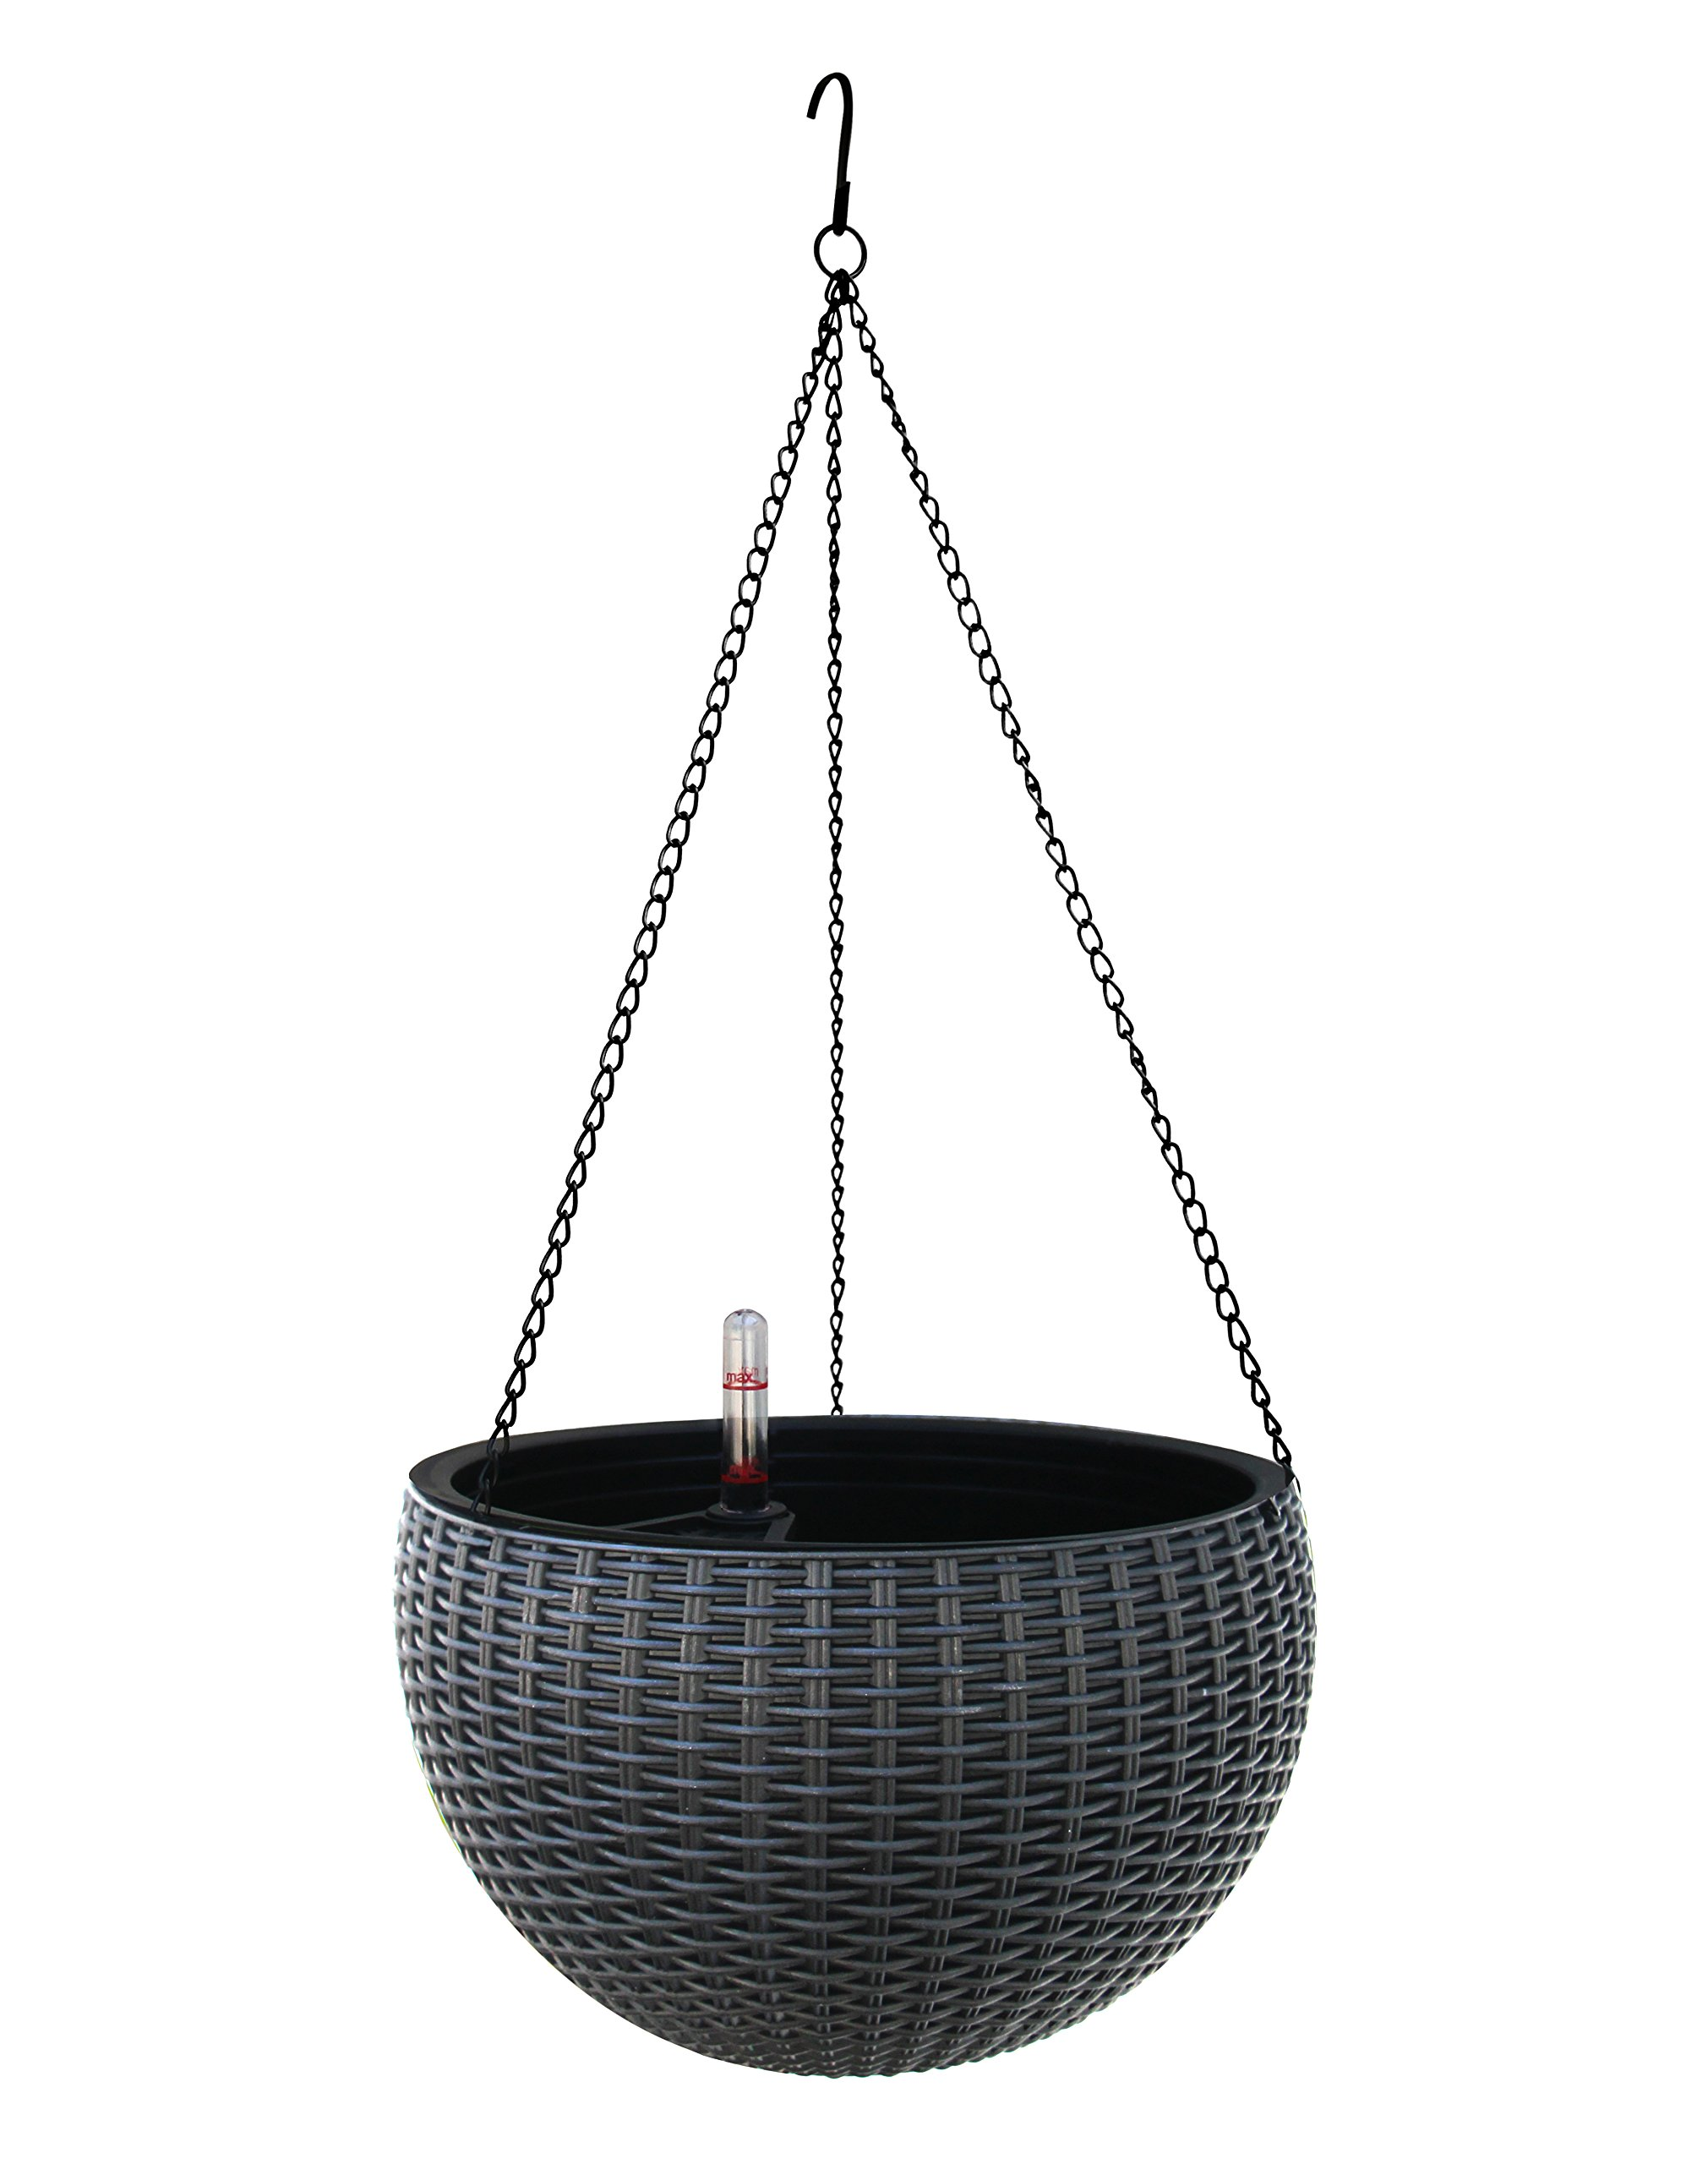 TABOR TOOLS TB707A Hanging Planter for Outdoor and Indoor Use, Elegant Round Plastic Wicker-Design Chain Basket for Flowers and Plants, Self-Watering with Water Level Indicator Gauge (Grey)